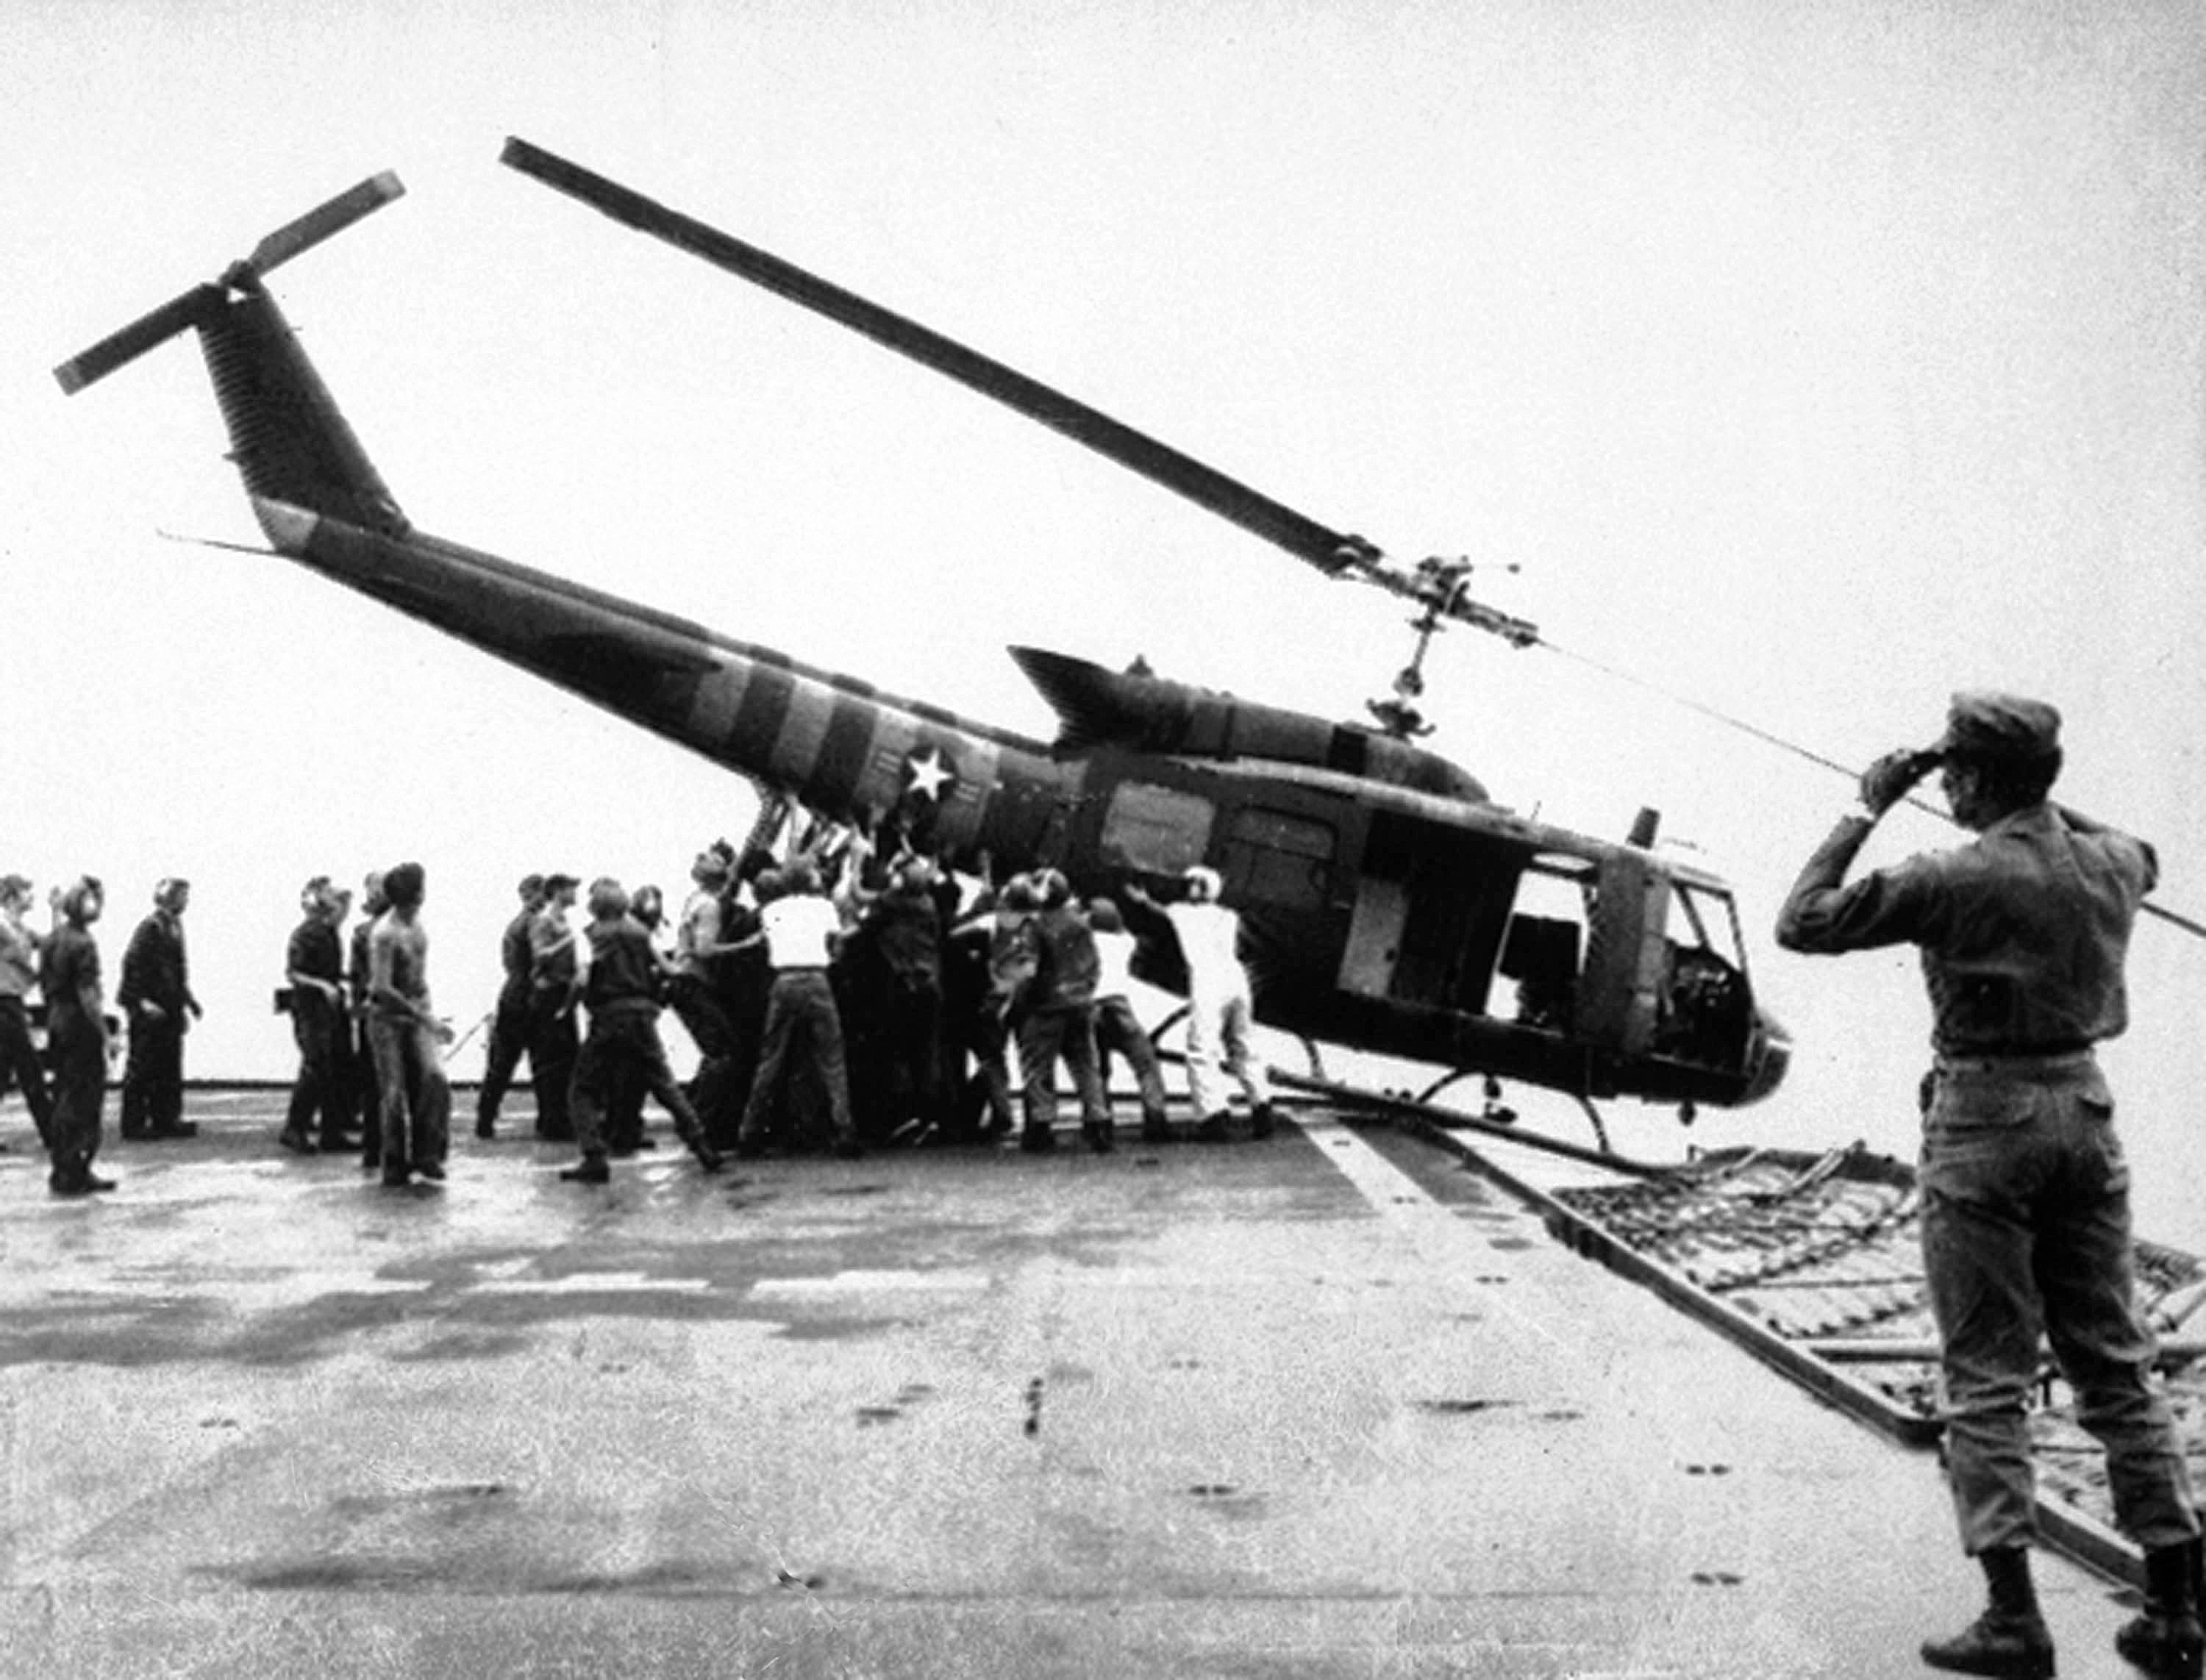 fall of saigon end of the vietnam war history essay One of the most iconic images from the fall of saigon did not happen in saigon why the us ditched helicopters during withdrawal from vietnam war instant articles news apr 15 war history online.